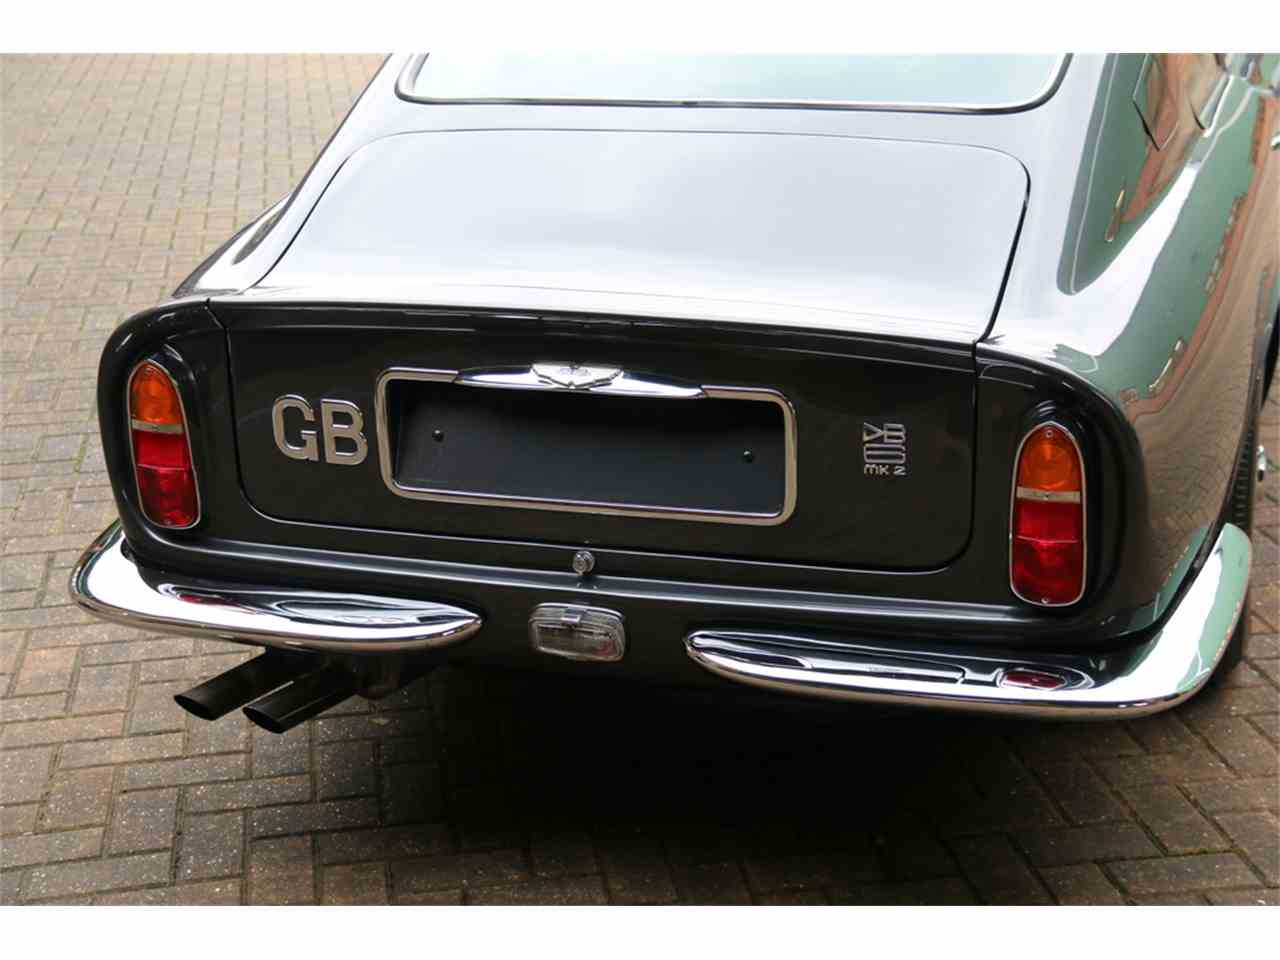 Large Picture of Classic 1970 Aston Martin DB6 Mark II located in  Offered by JD Classics LTD - LRY5